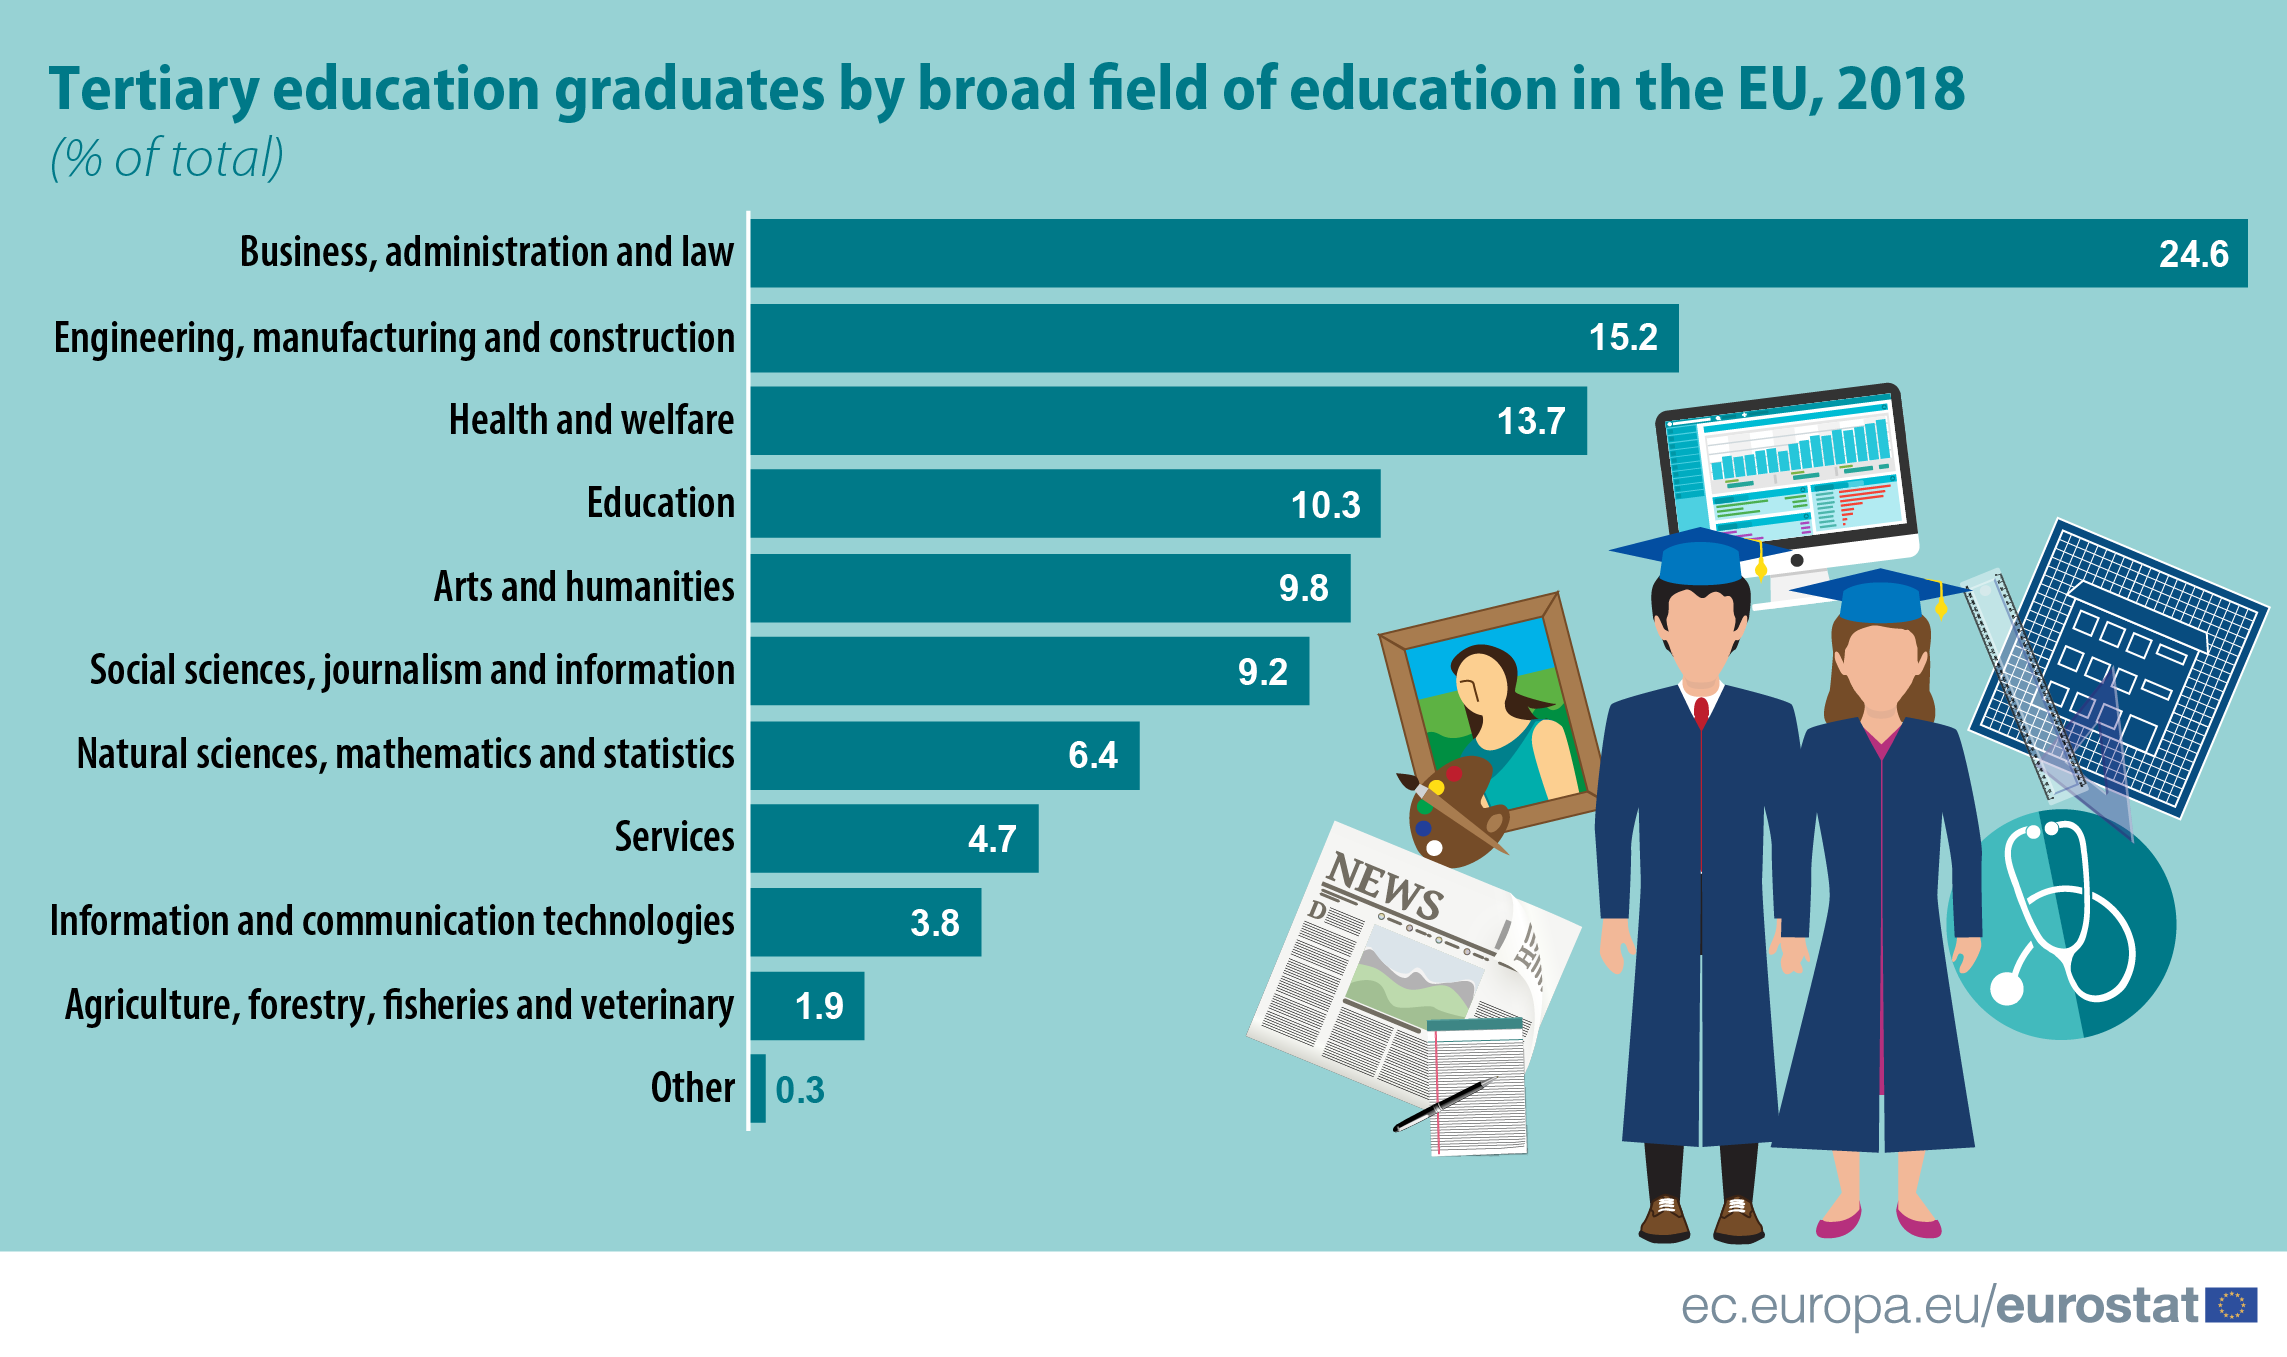 Infographic: Tertiary education graduates by broad field of education in the EU, 2018